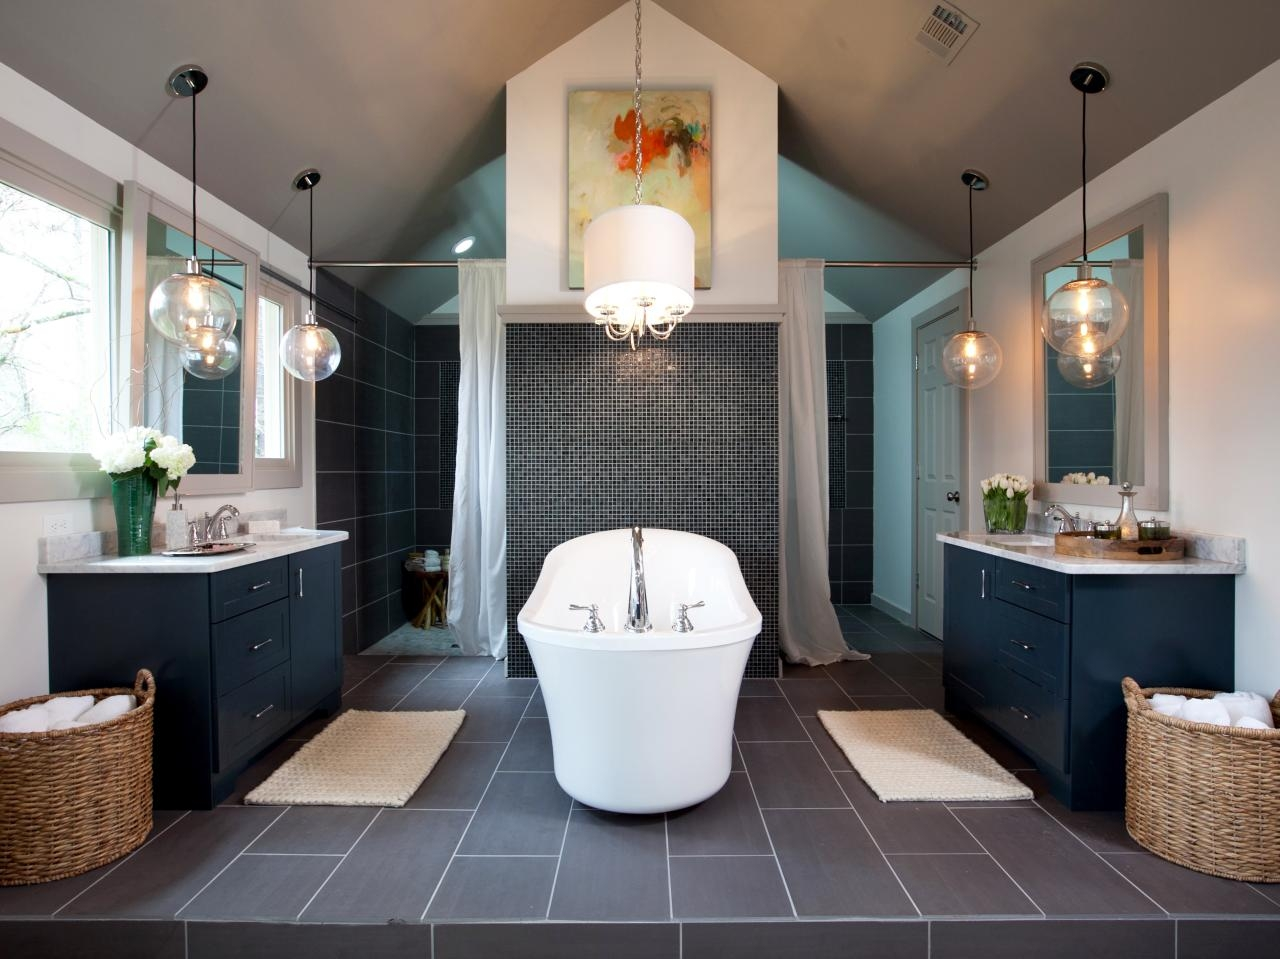 Bathrooms Modern Bathroom With Oval Modern Bathtub And Wooden Pertaining To Modern Bathroom Chandeliers (Image 10 of 15)